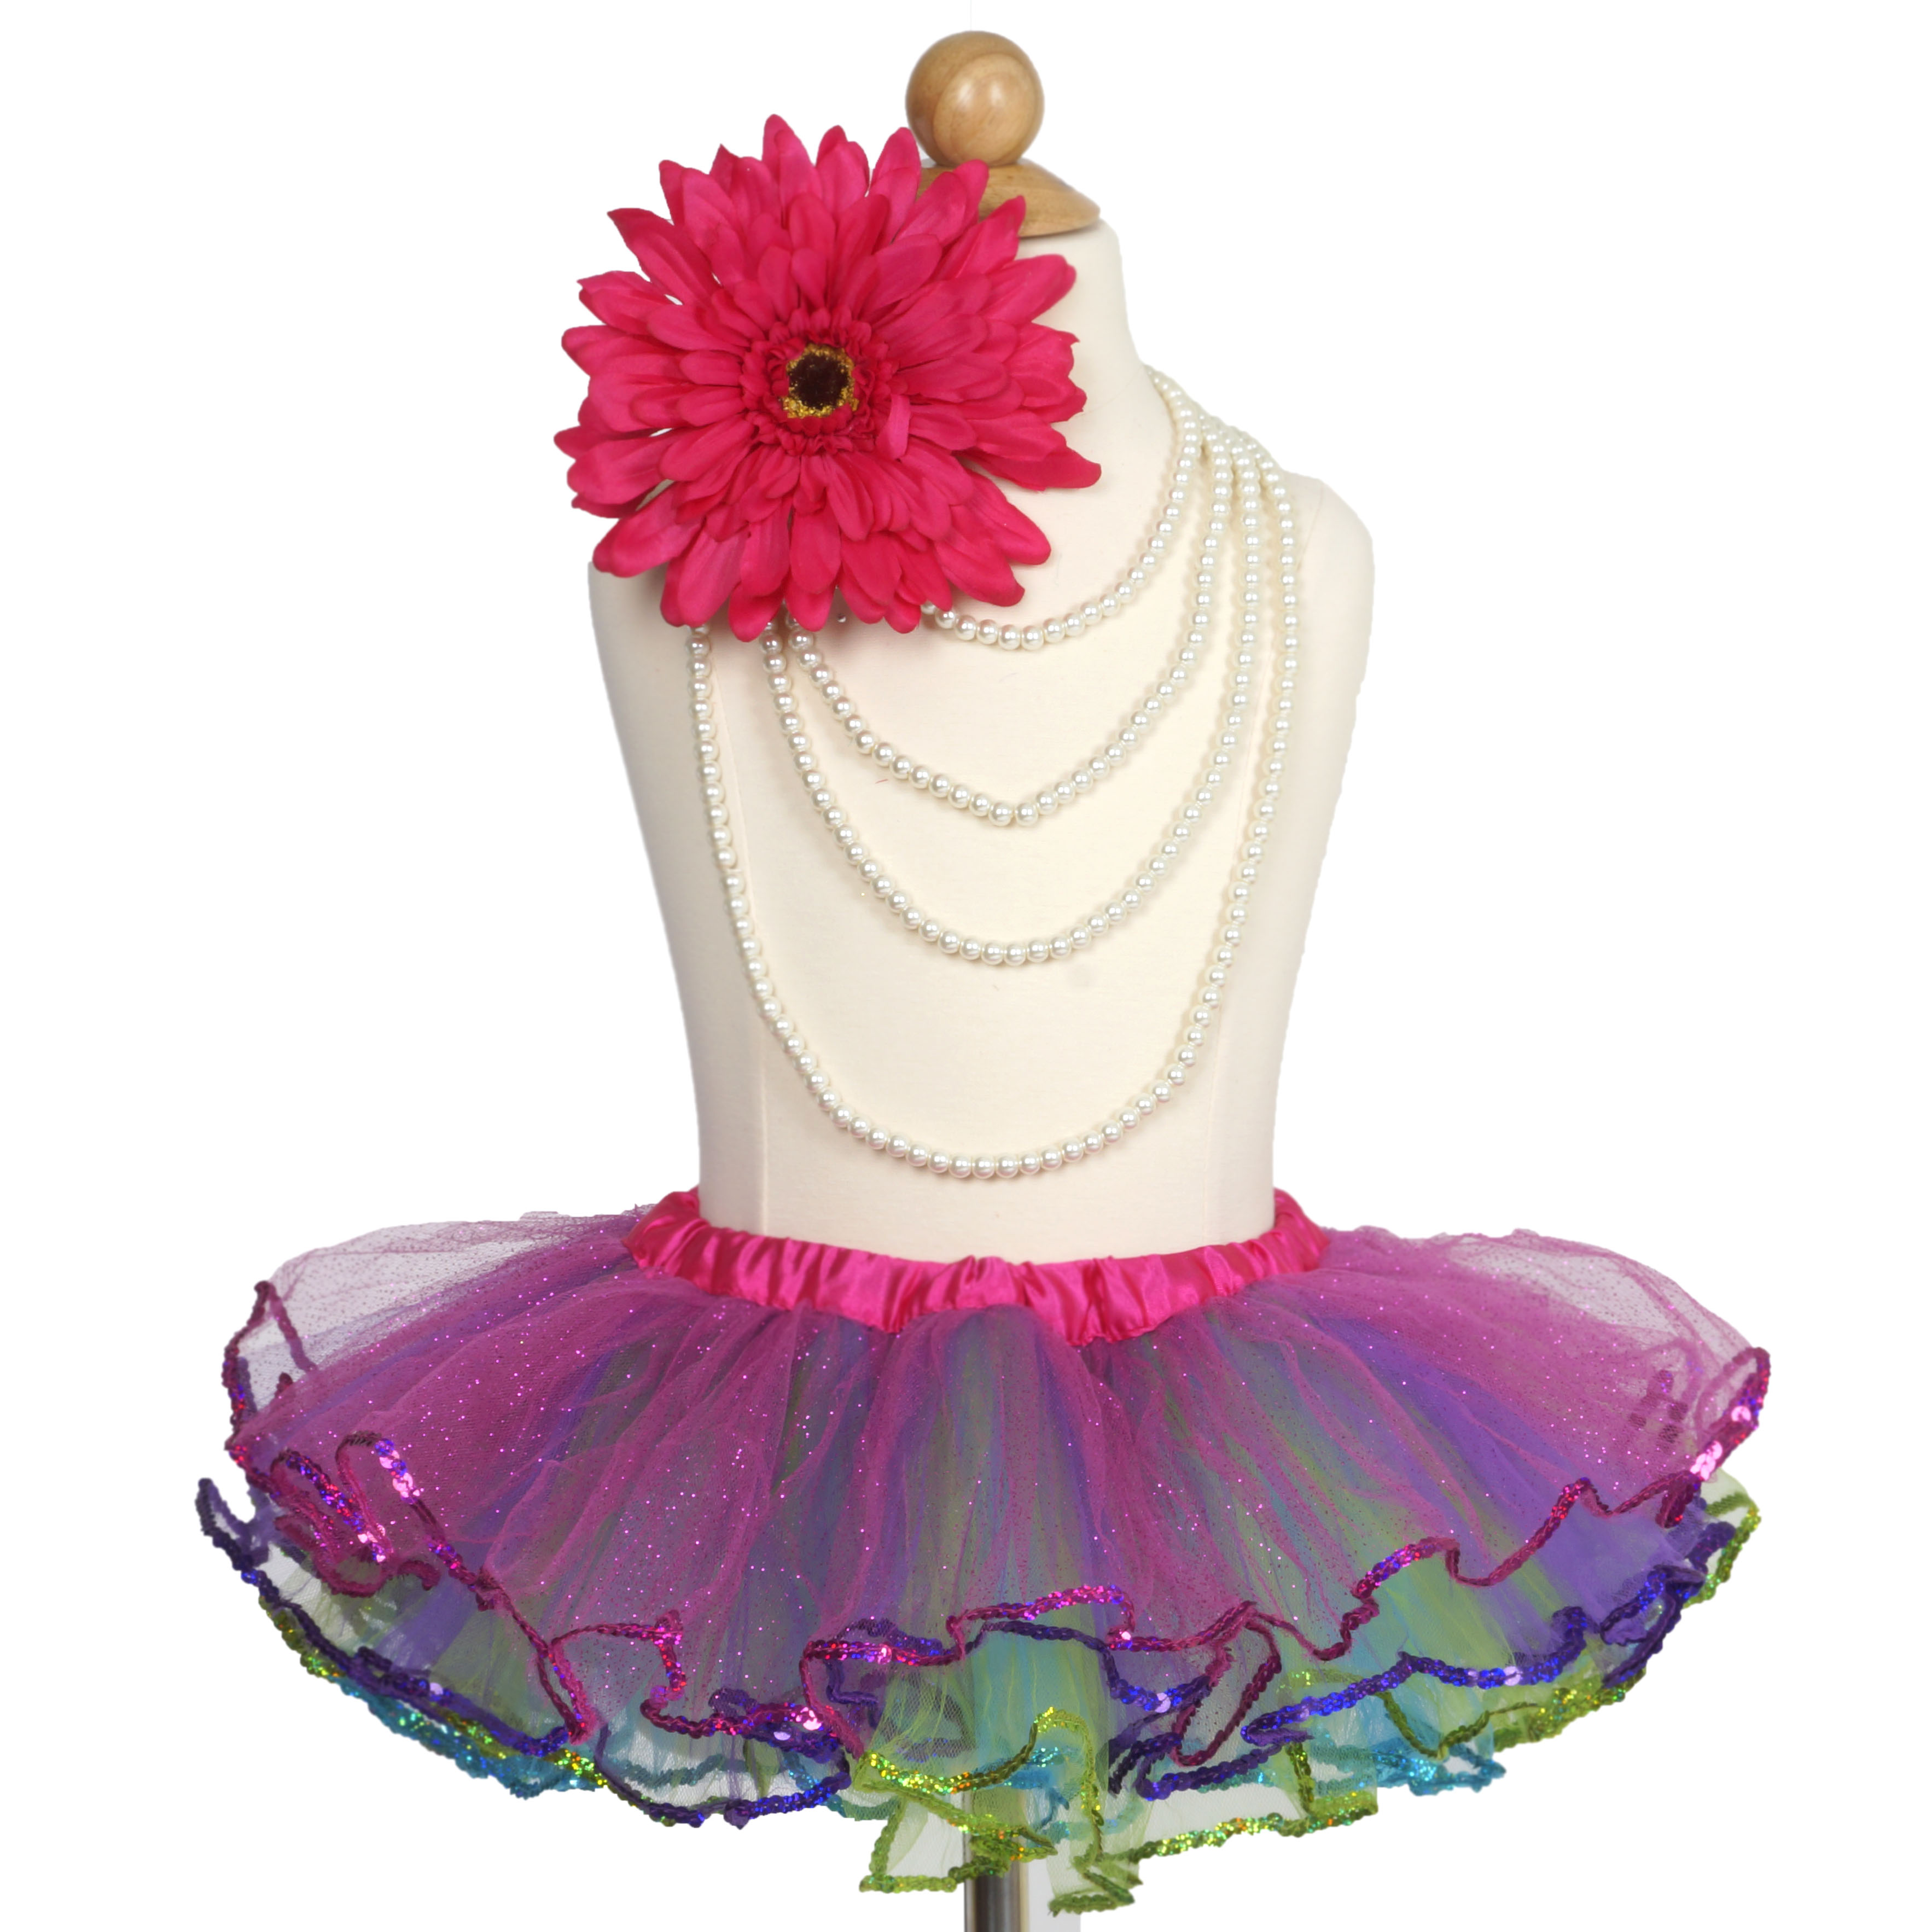 Efavormart Adventurous Multi-color Sequined Girls Ballet Tutu Skirt for Dance Performance Events